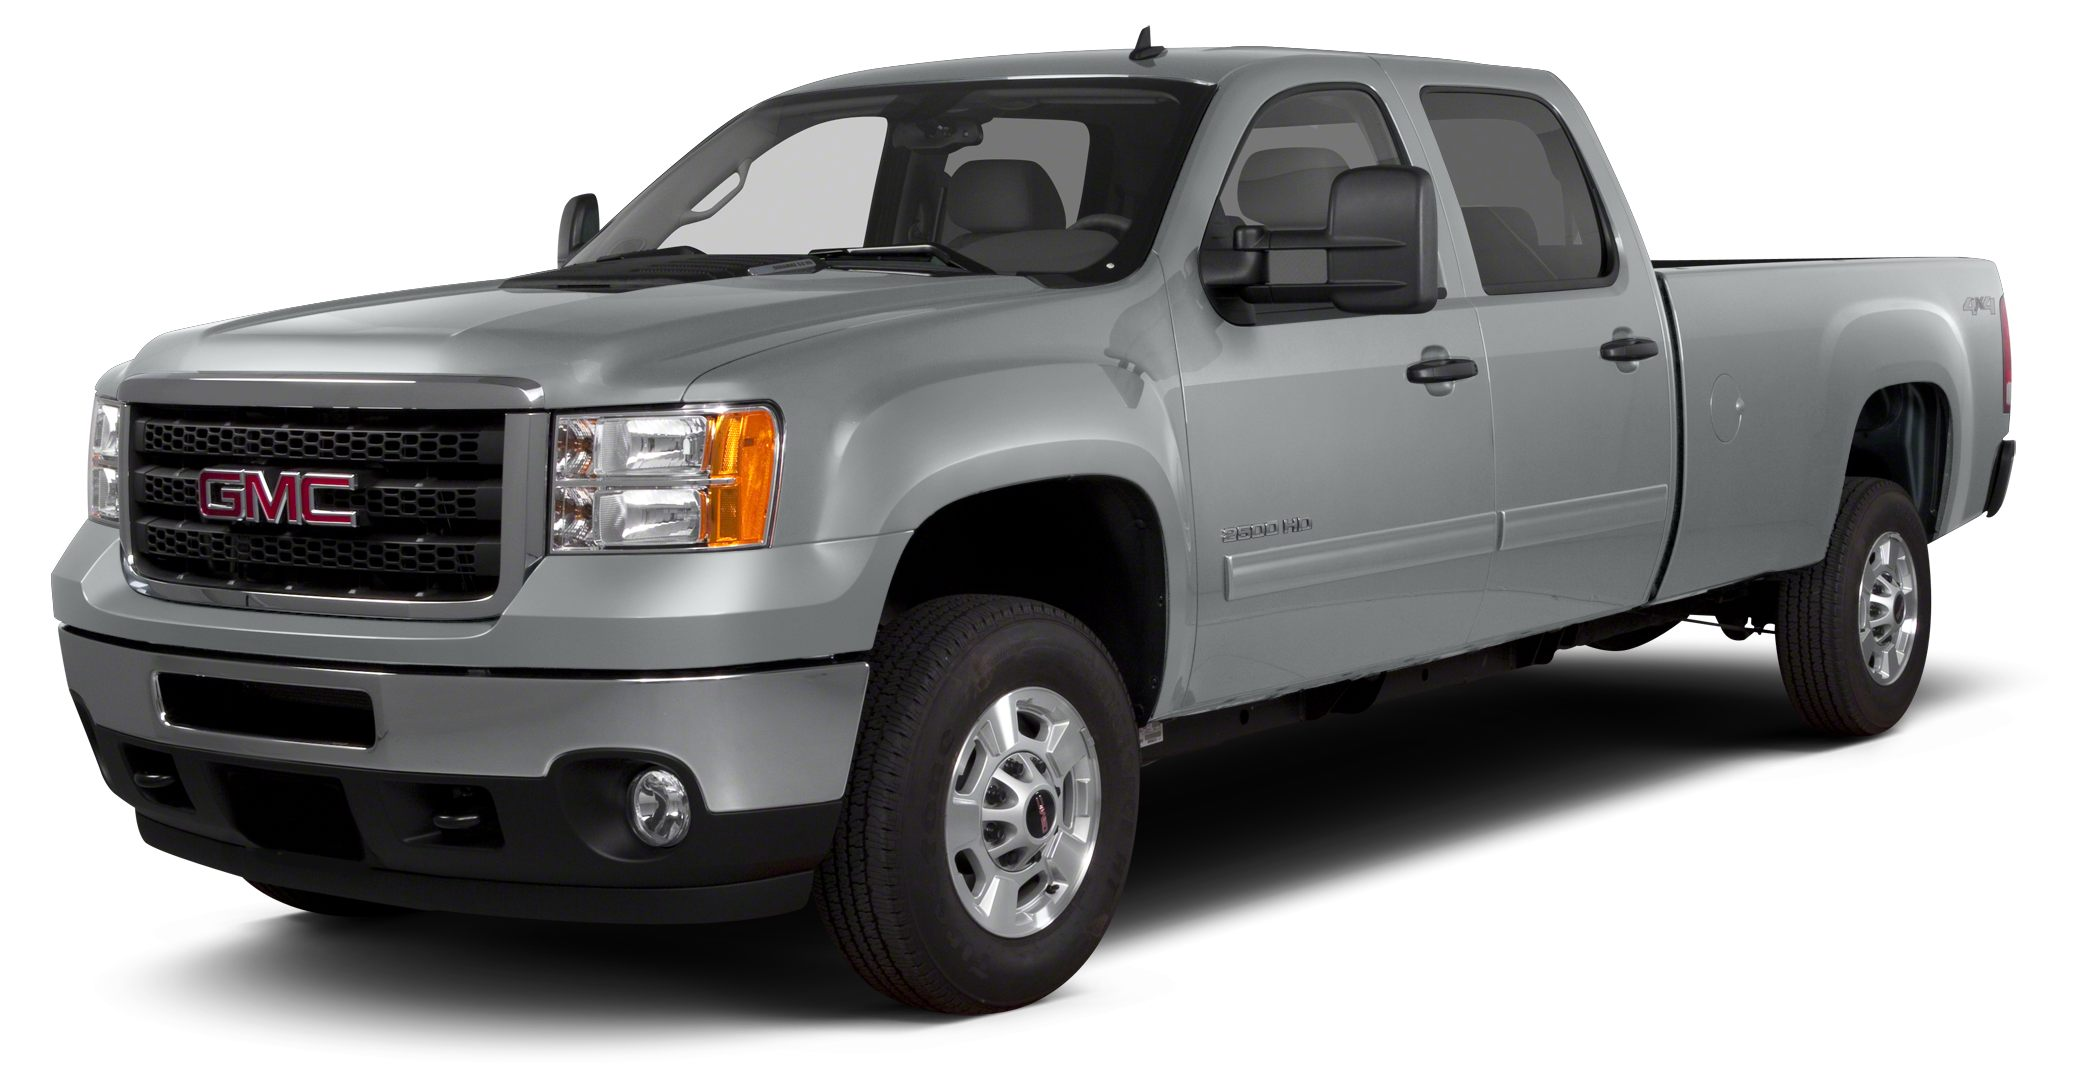 2013 GMC Sierra 2500HD SLE Call Frank or Zak with any questions  Leather Seats 2013 GMC Sierra 2